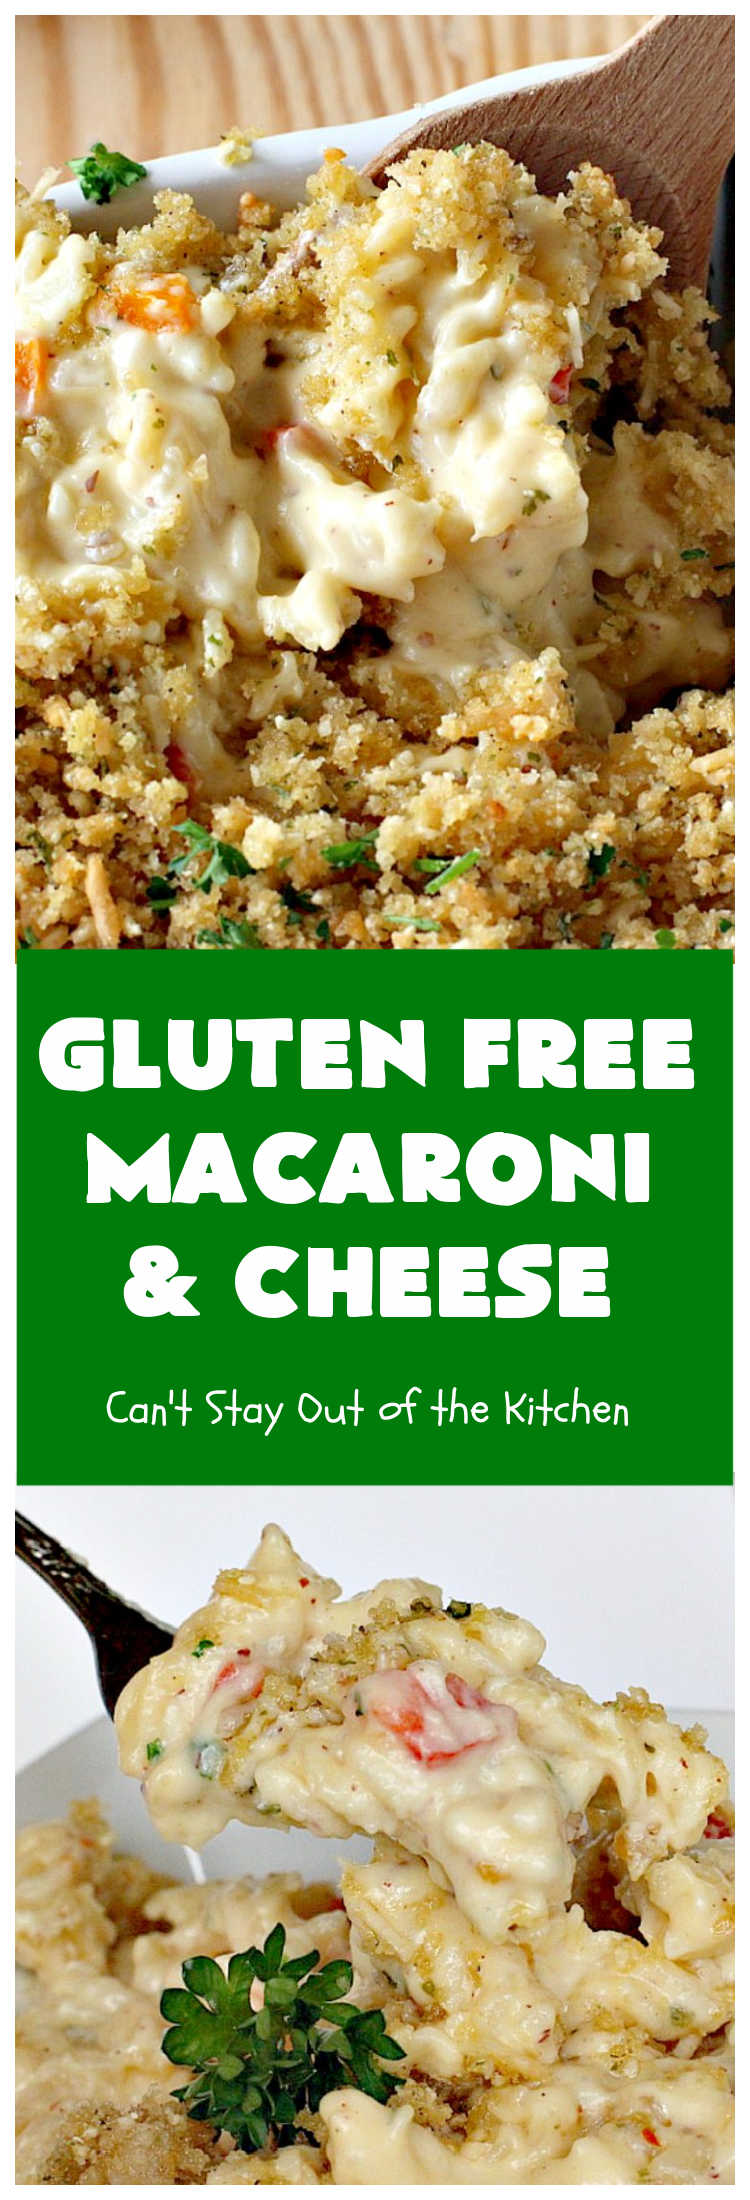 Gluten Free Macaroni & Cheese | Can't Stay Out of the Kitchen | one of the BEST #MacAndCheese dishes you'll ever eat. If you want comfort food, this extra creamy version uses 3 #cheeses! Terrific for family or company dinners. #GlutenFree #MacaroniAndCheese #FavoriteMacAndCheese #GlutenFreeMacaroniAndCheese